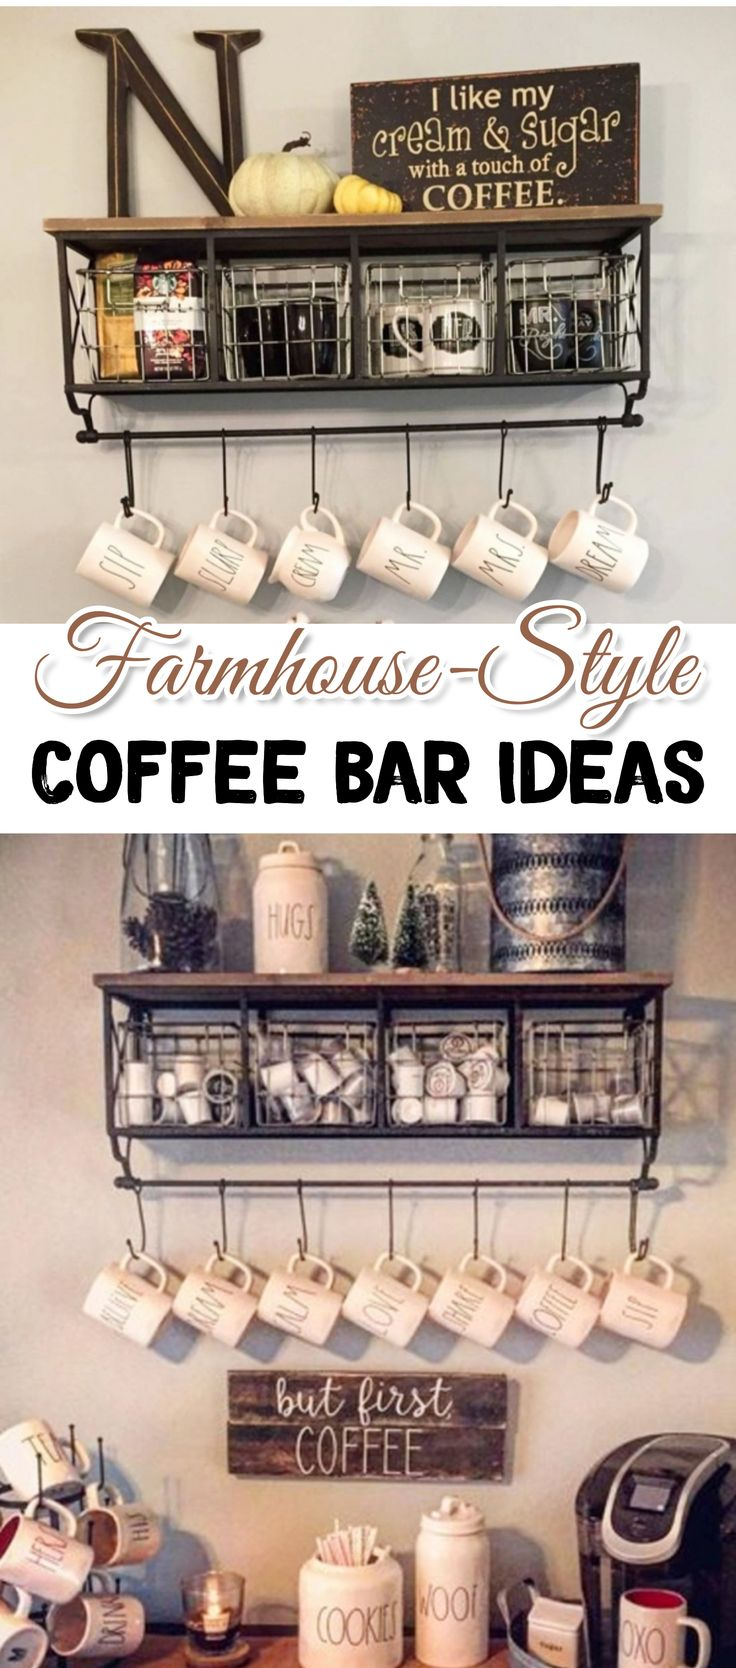 335 Best Coffee Bar Ideas Diy Home Coffee Bars Images On